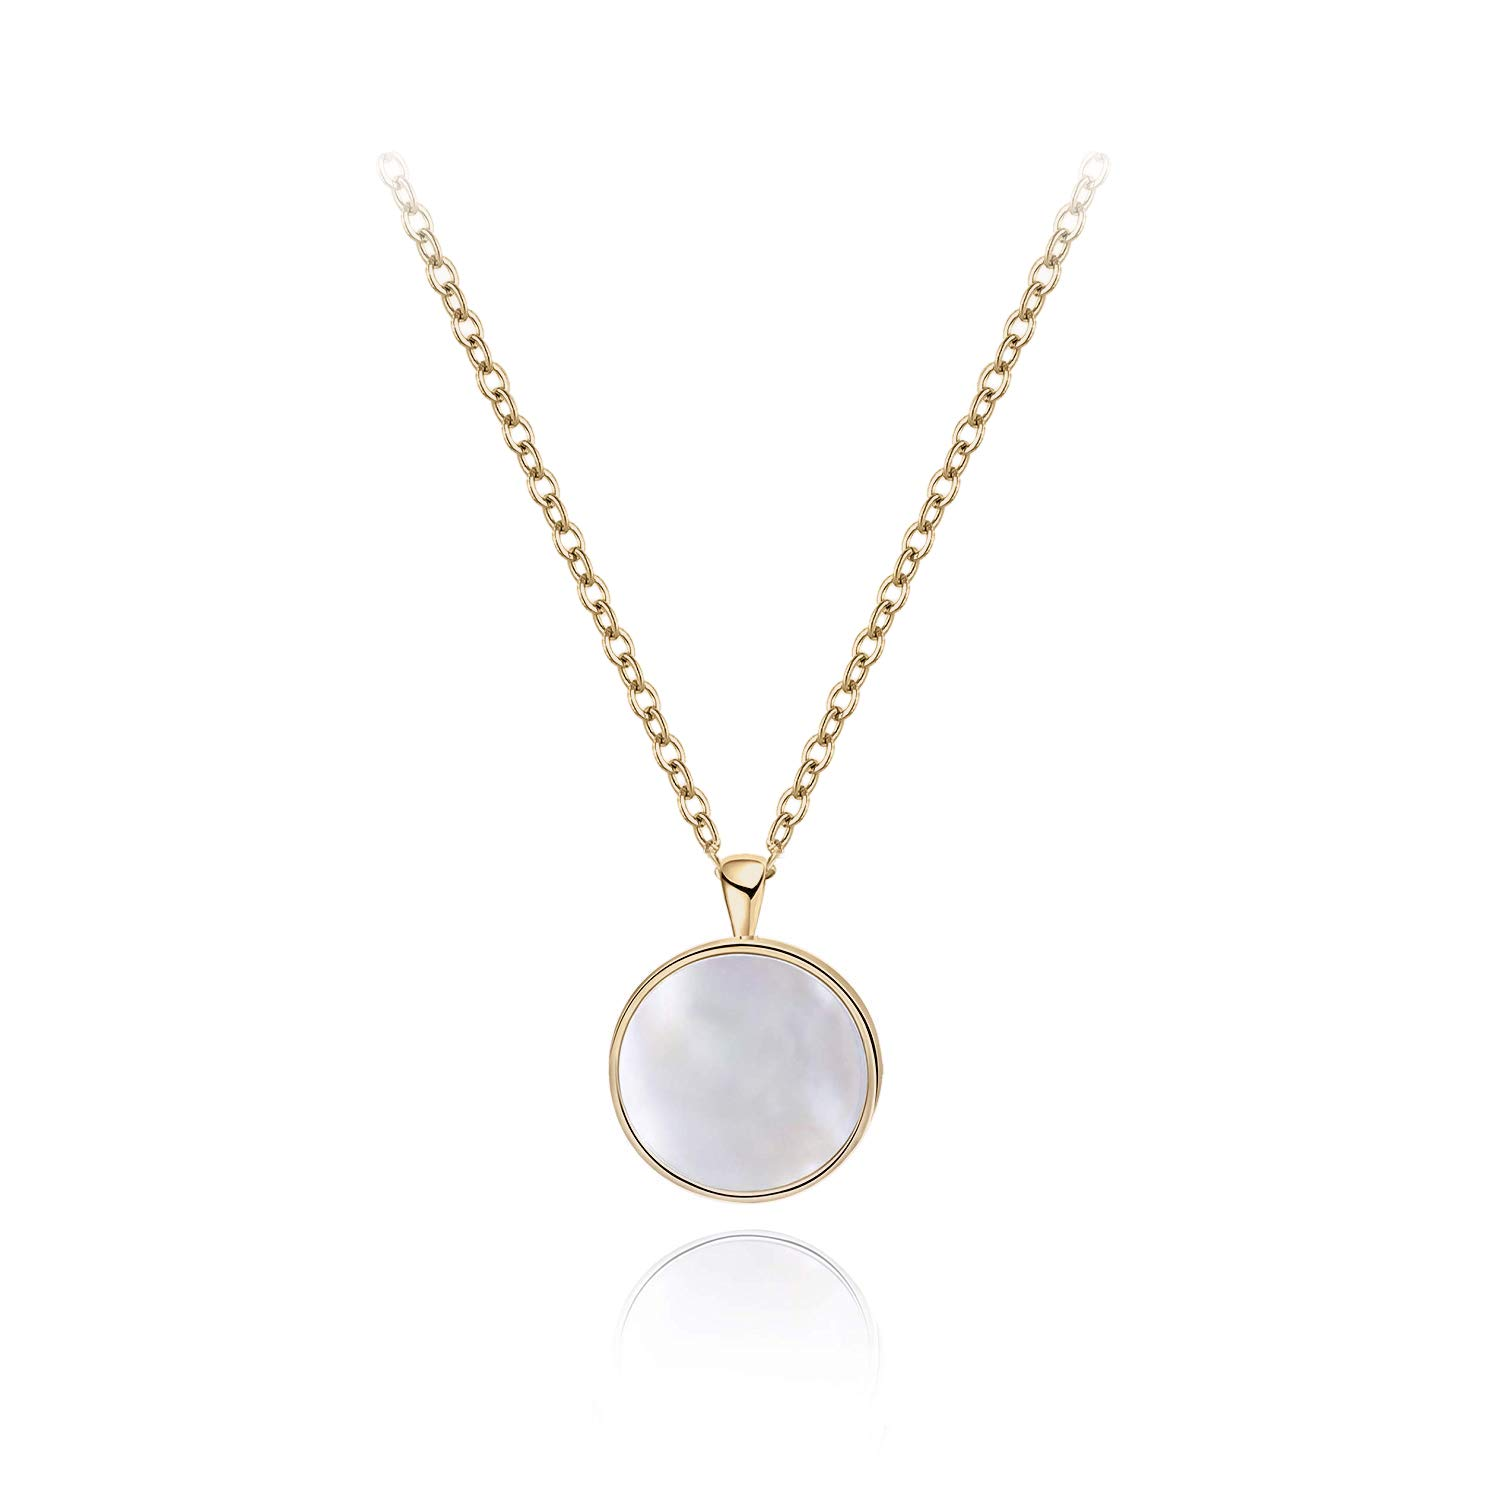 6836346228b8d S.Leaf Sterling Silver Dainty Necklace Mother of Pearl Necklace Circle Disc  Pendant Necklace